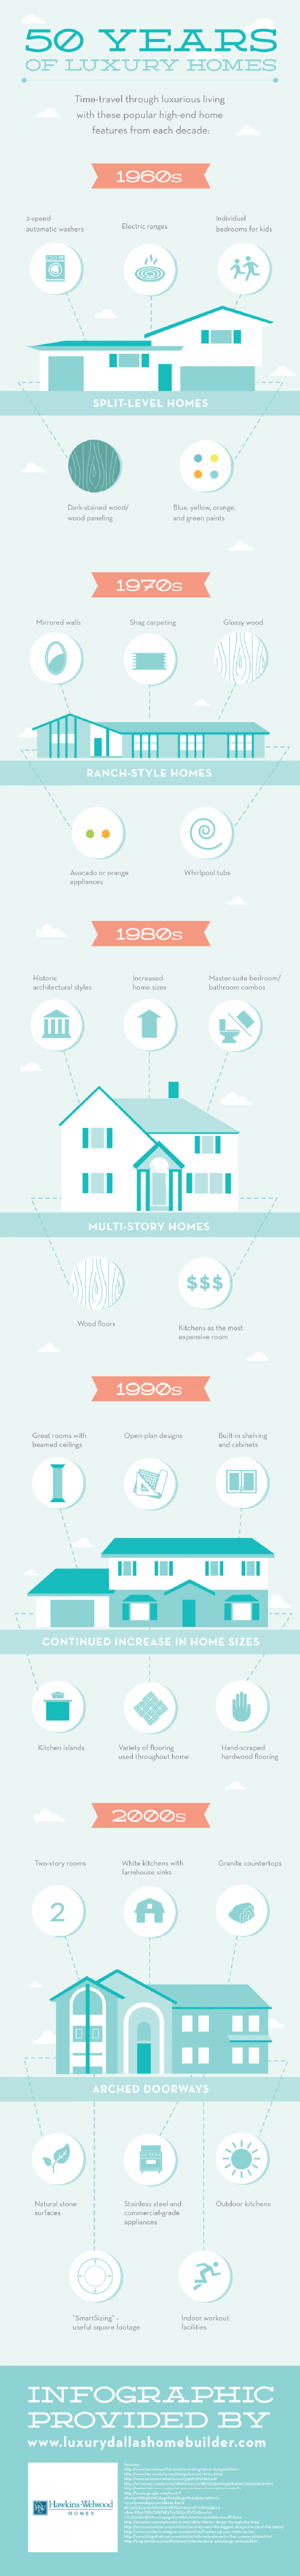 50 Years of Luxury Homes Infographic